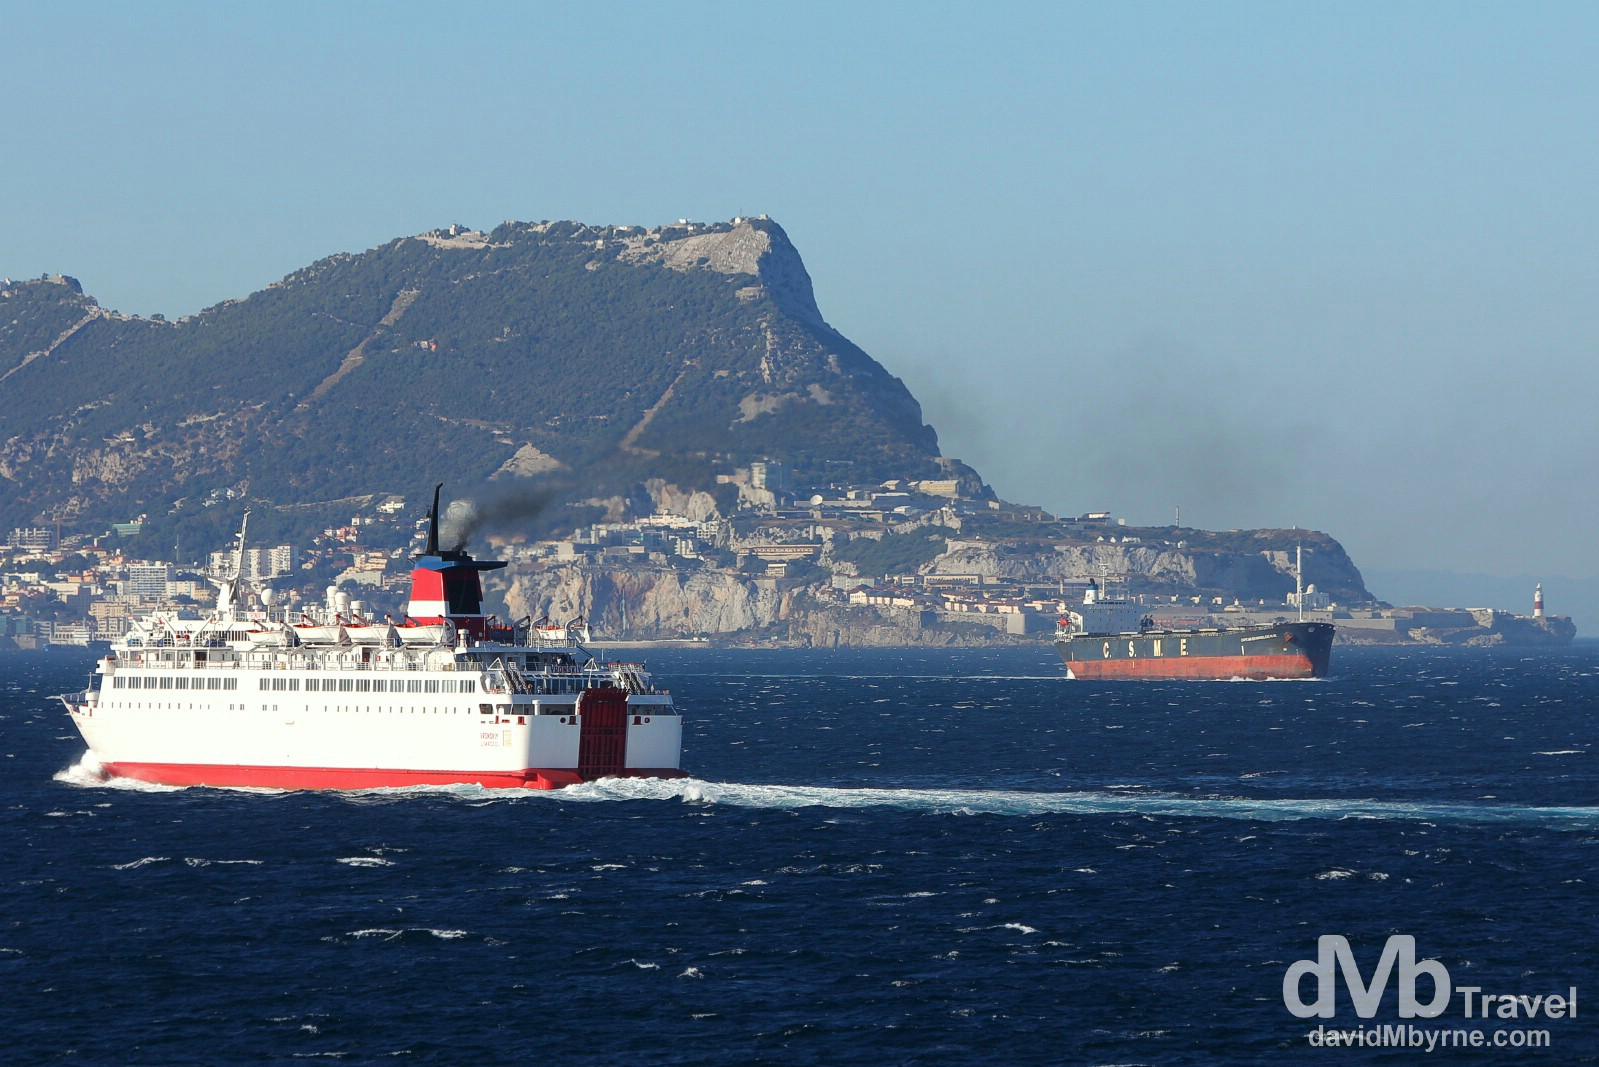 Shipping & The Rock of Gibraltar en route across the Strait of Gibraltar from Tangier Med, Morocco, to Algeciras, southern Spain. June 4th, 2014.